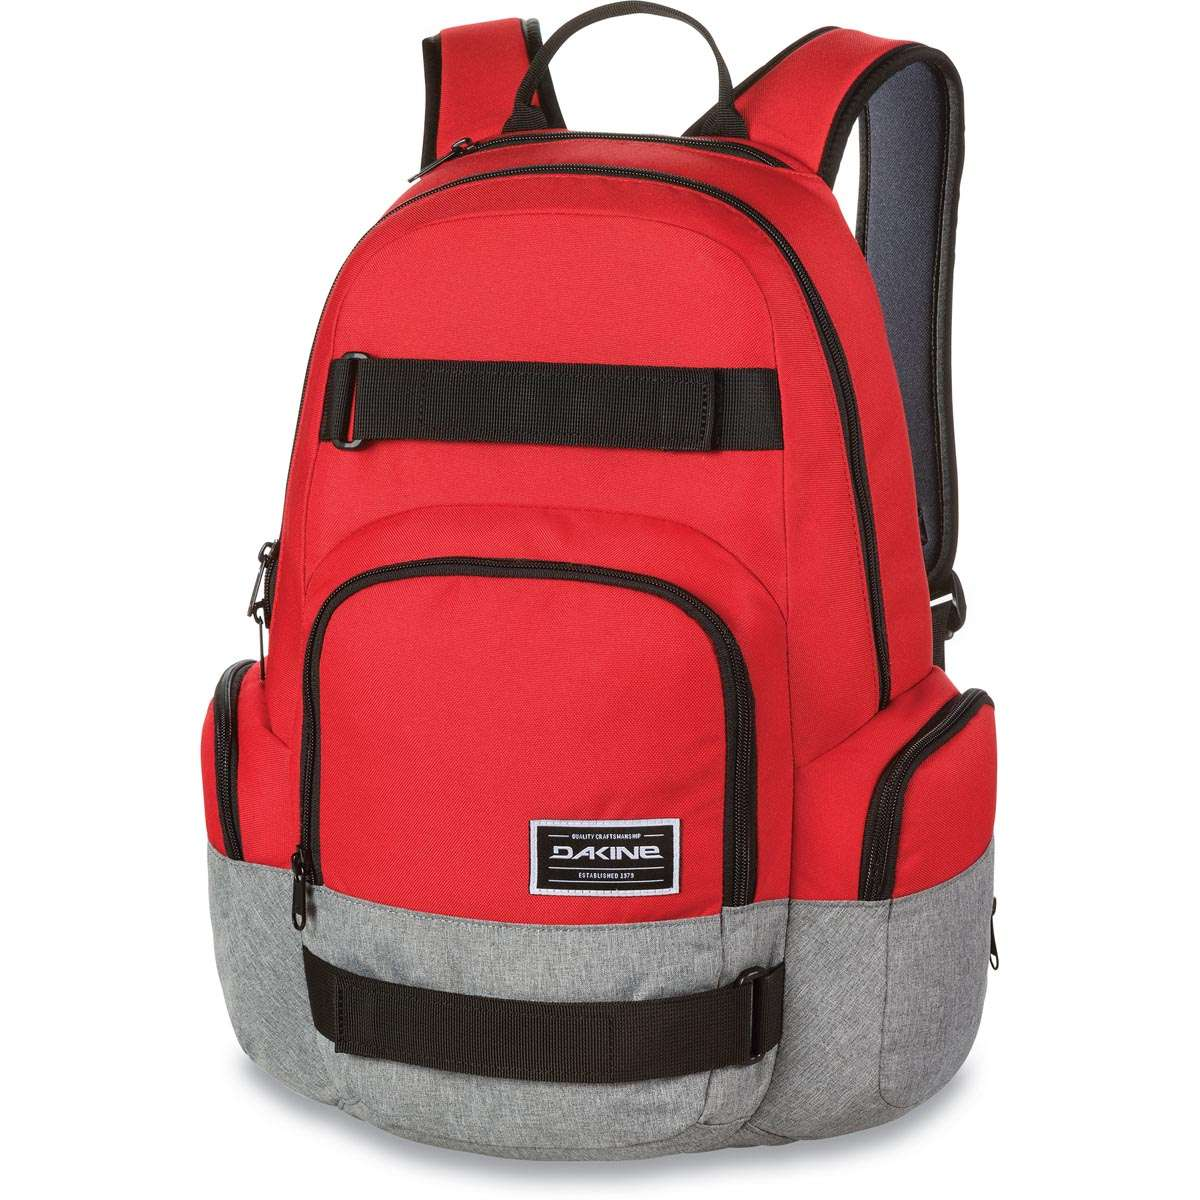 Dakine Atlas 25L Skate Rucksack mit Laptopfach Red | Dakine Shop